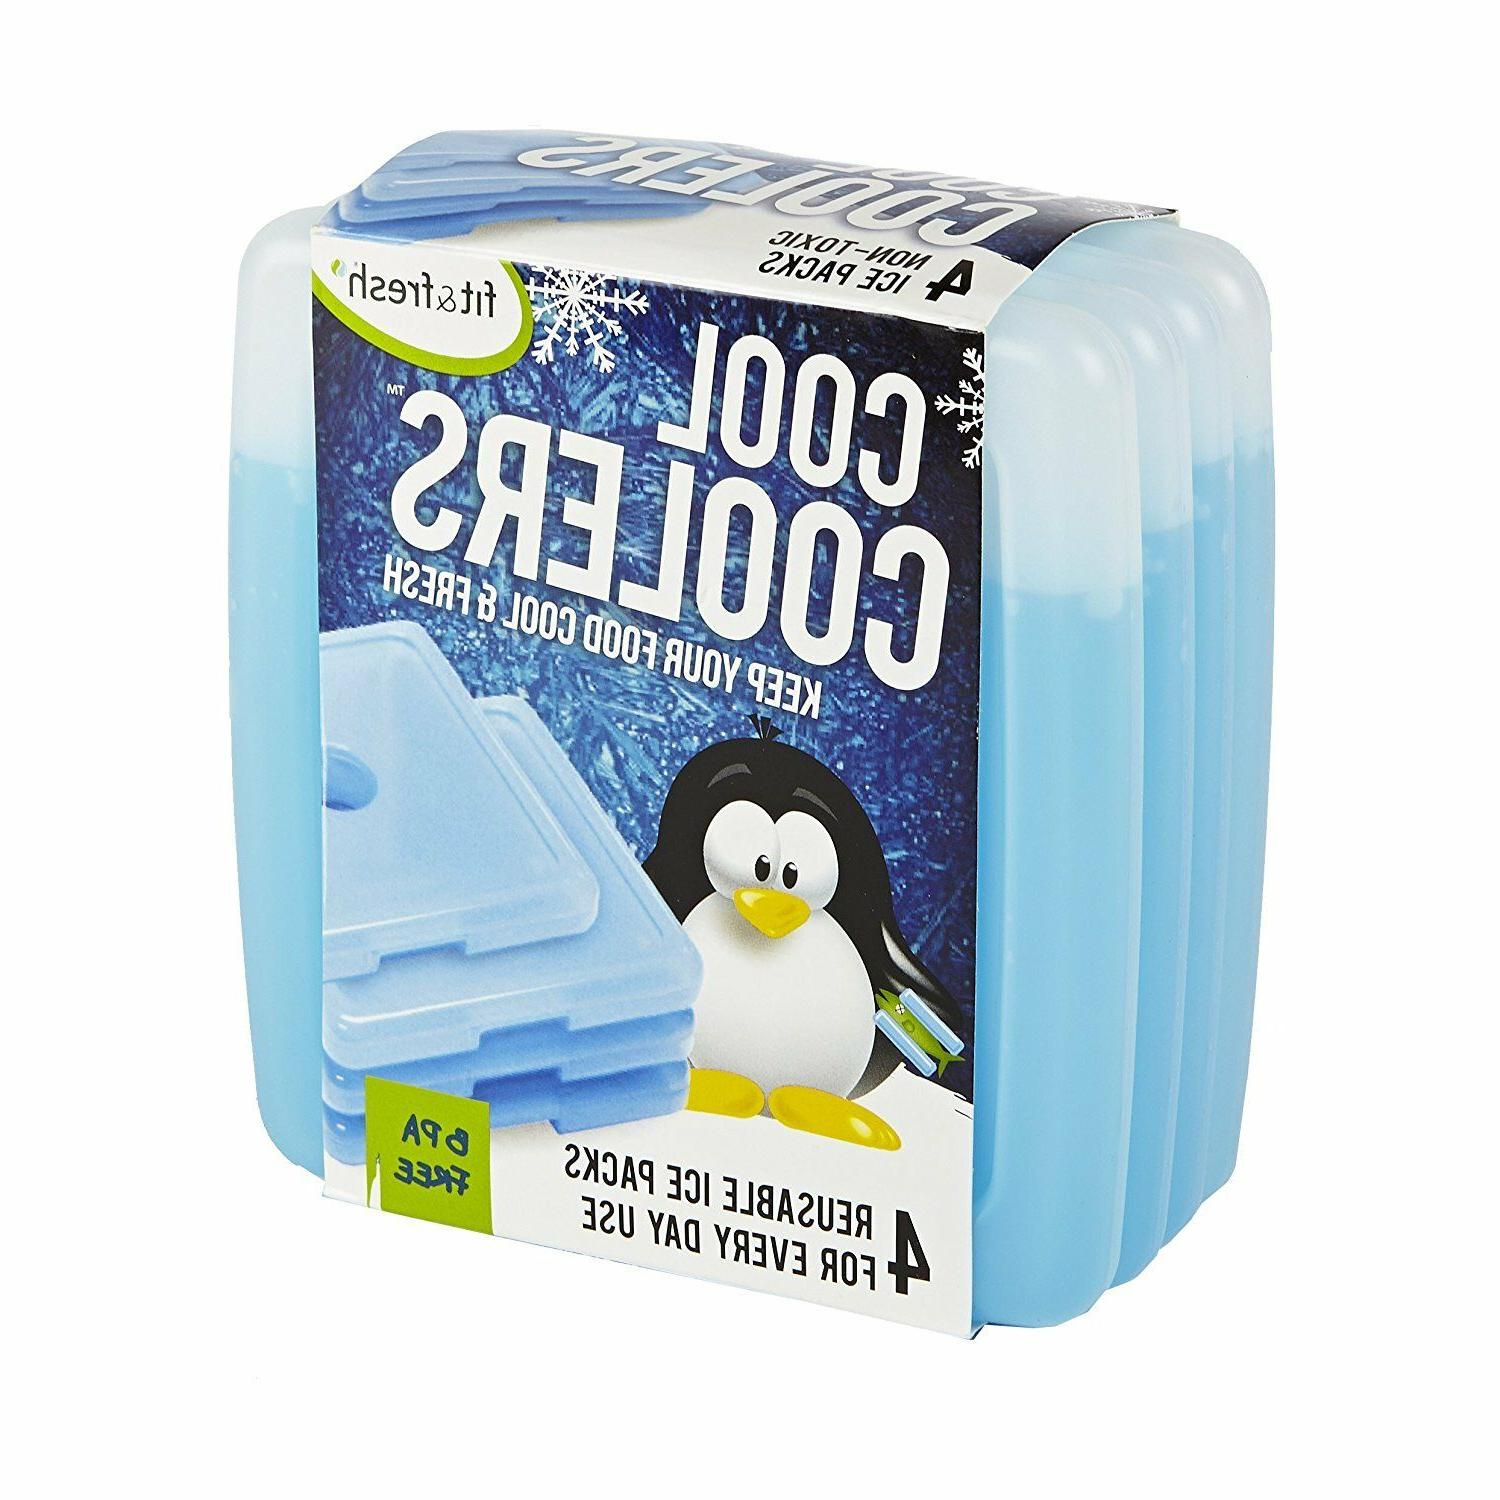 4-Pack Ice for Boxes Bags Coolers